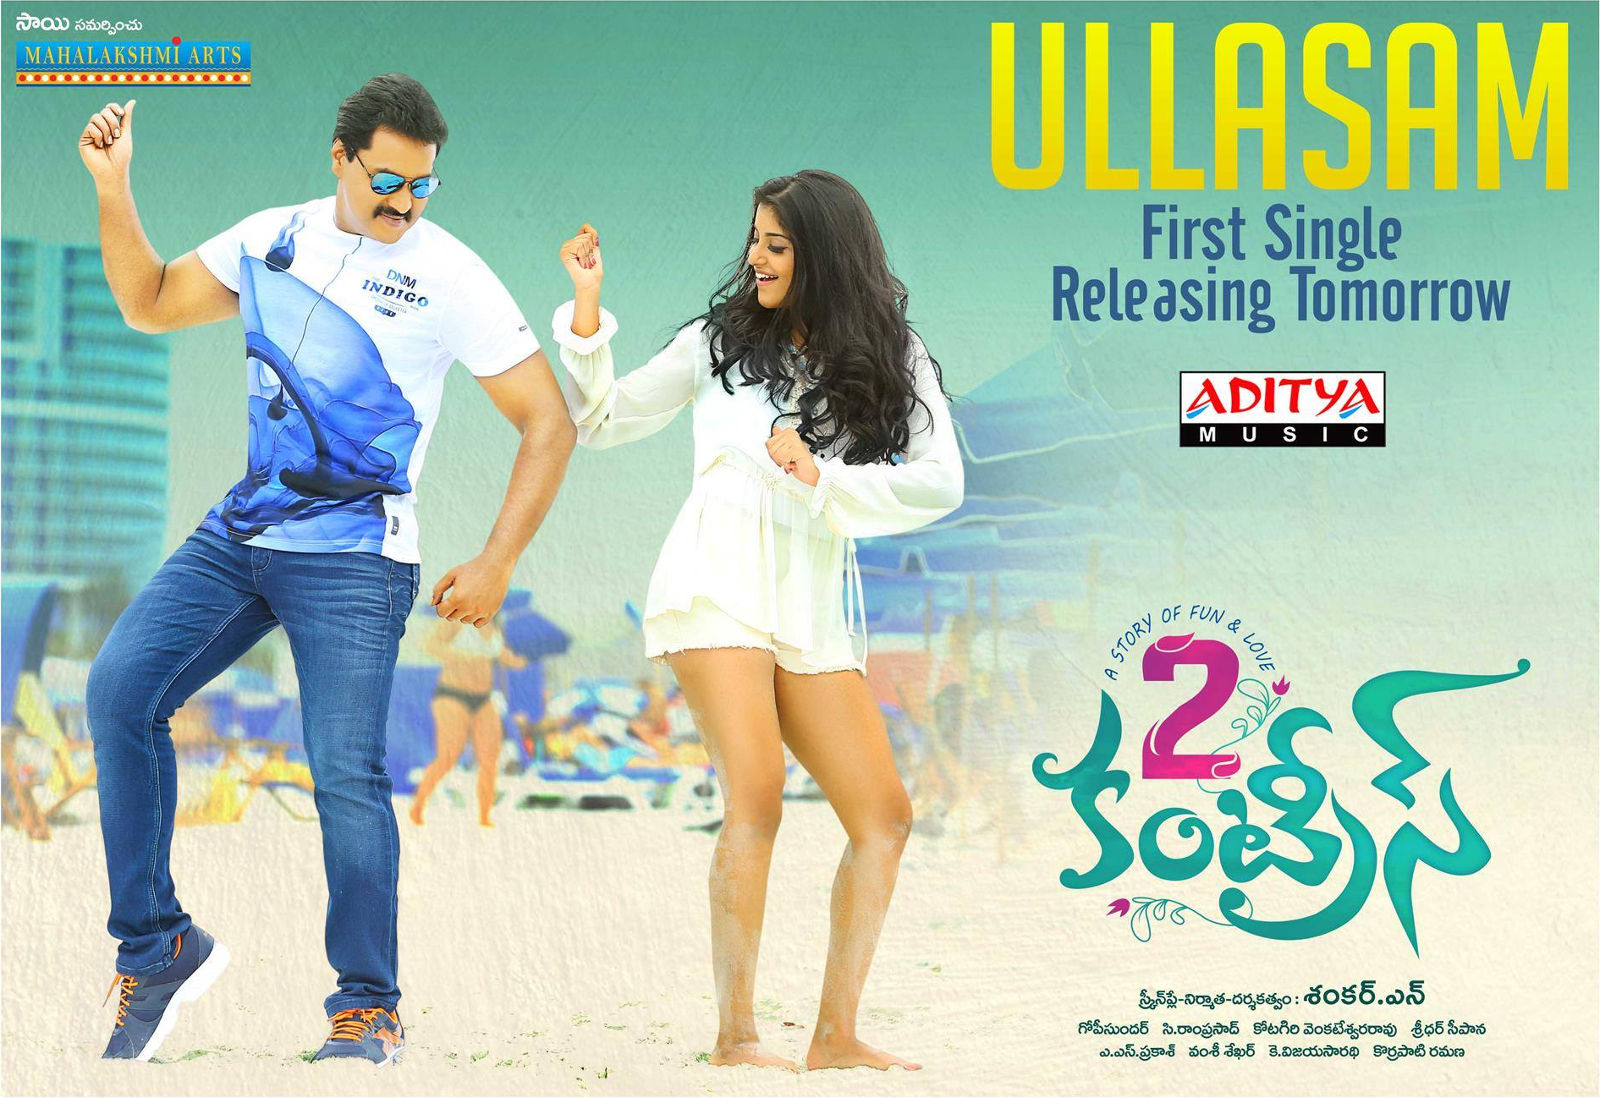 Sunil Manisha Raj 2 Countries Movie Ullasam First Single Song Releasing Tomorrow Wallpaper